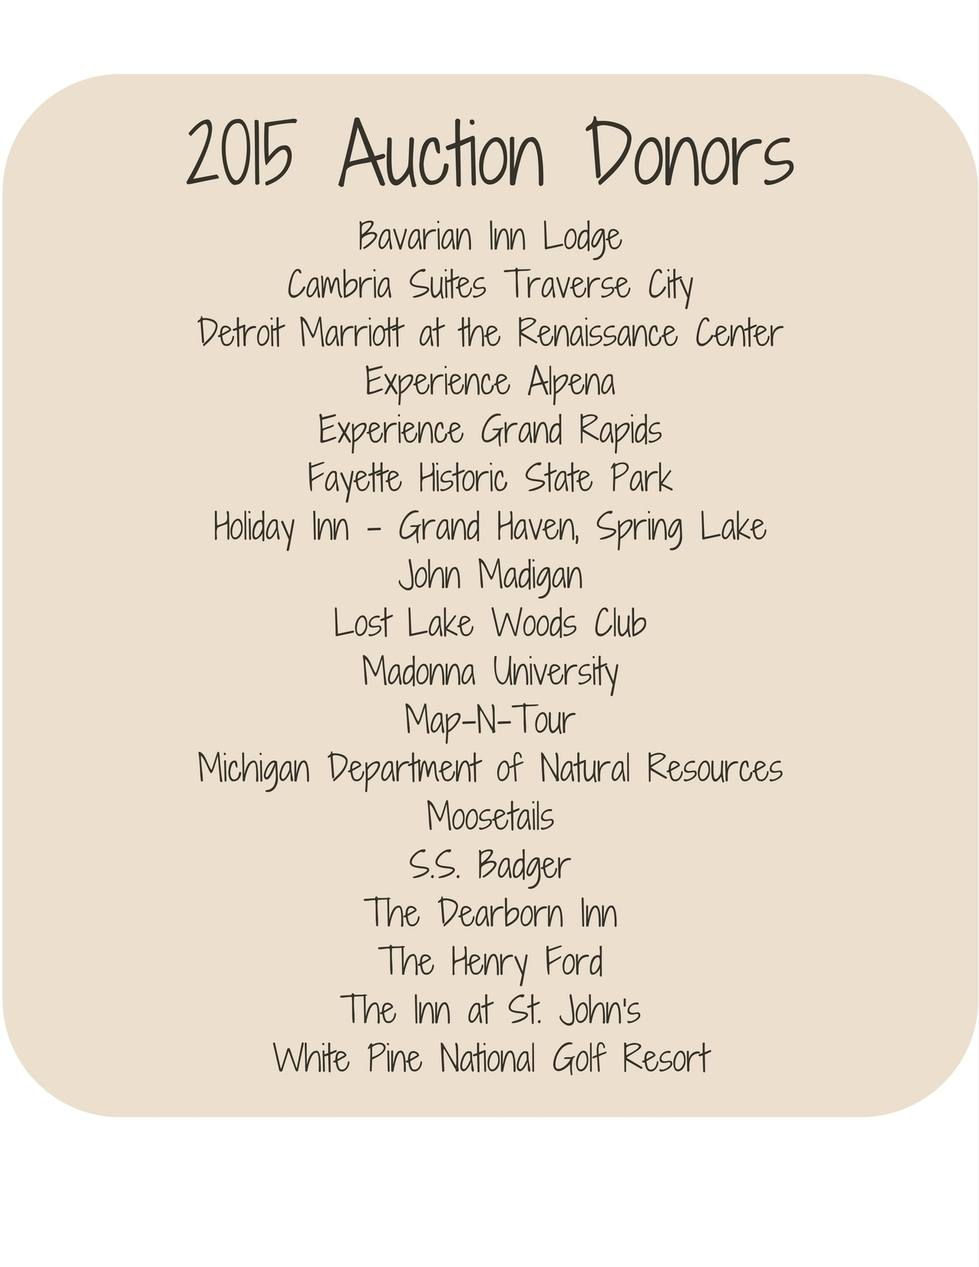 2015 Auction Donors